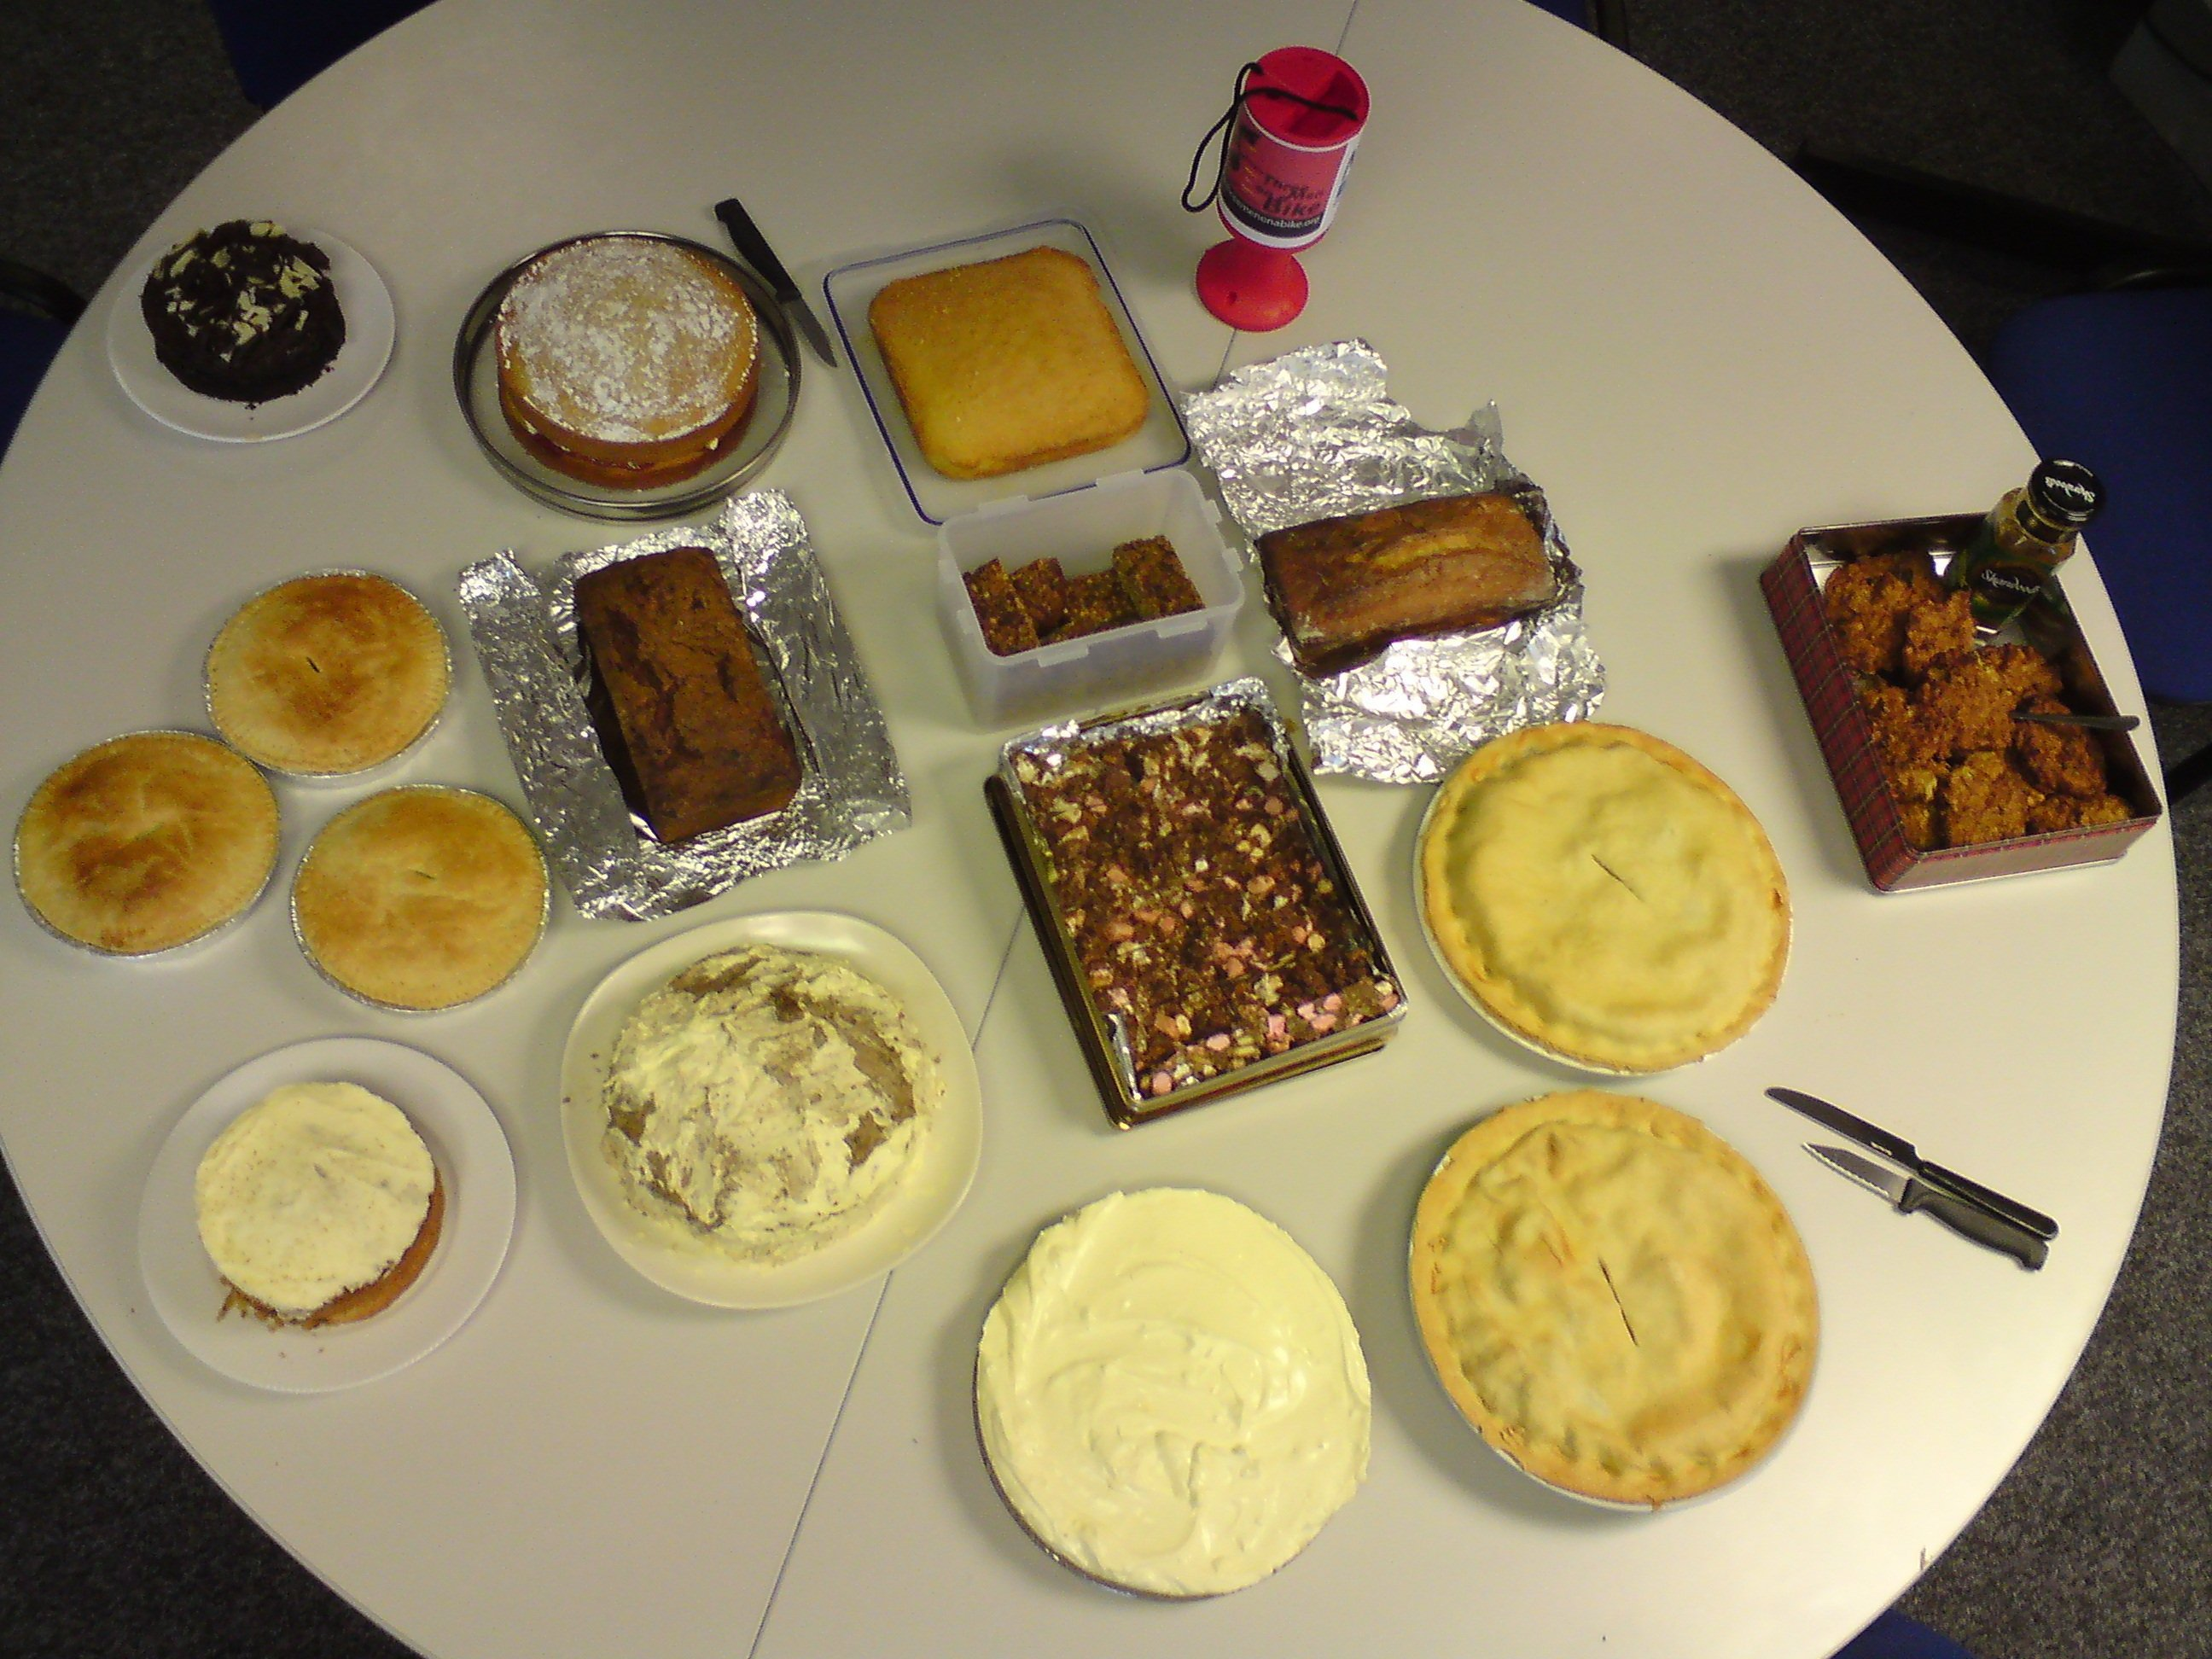 More fundraising food at head office